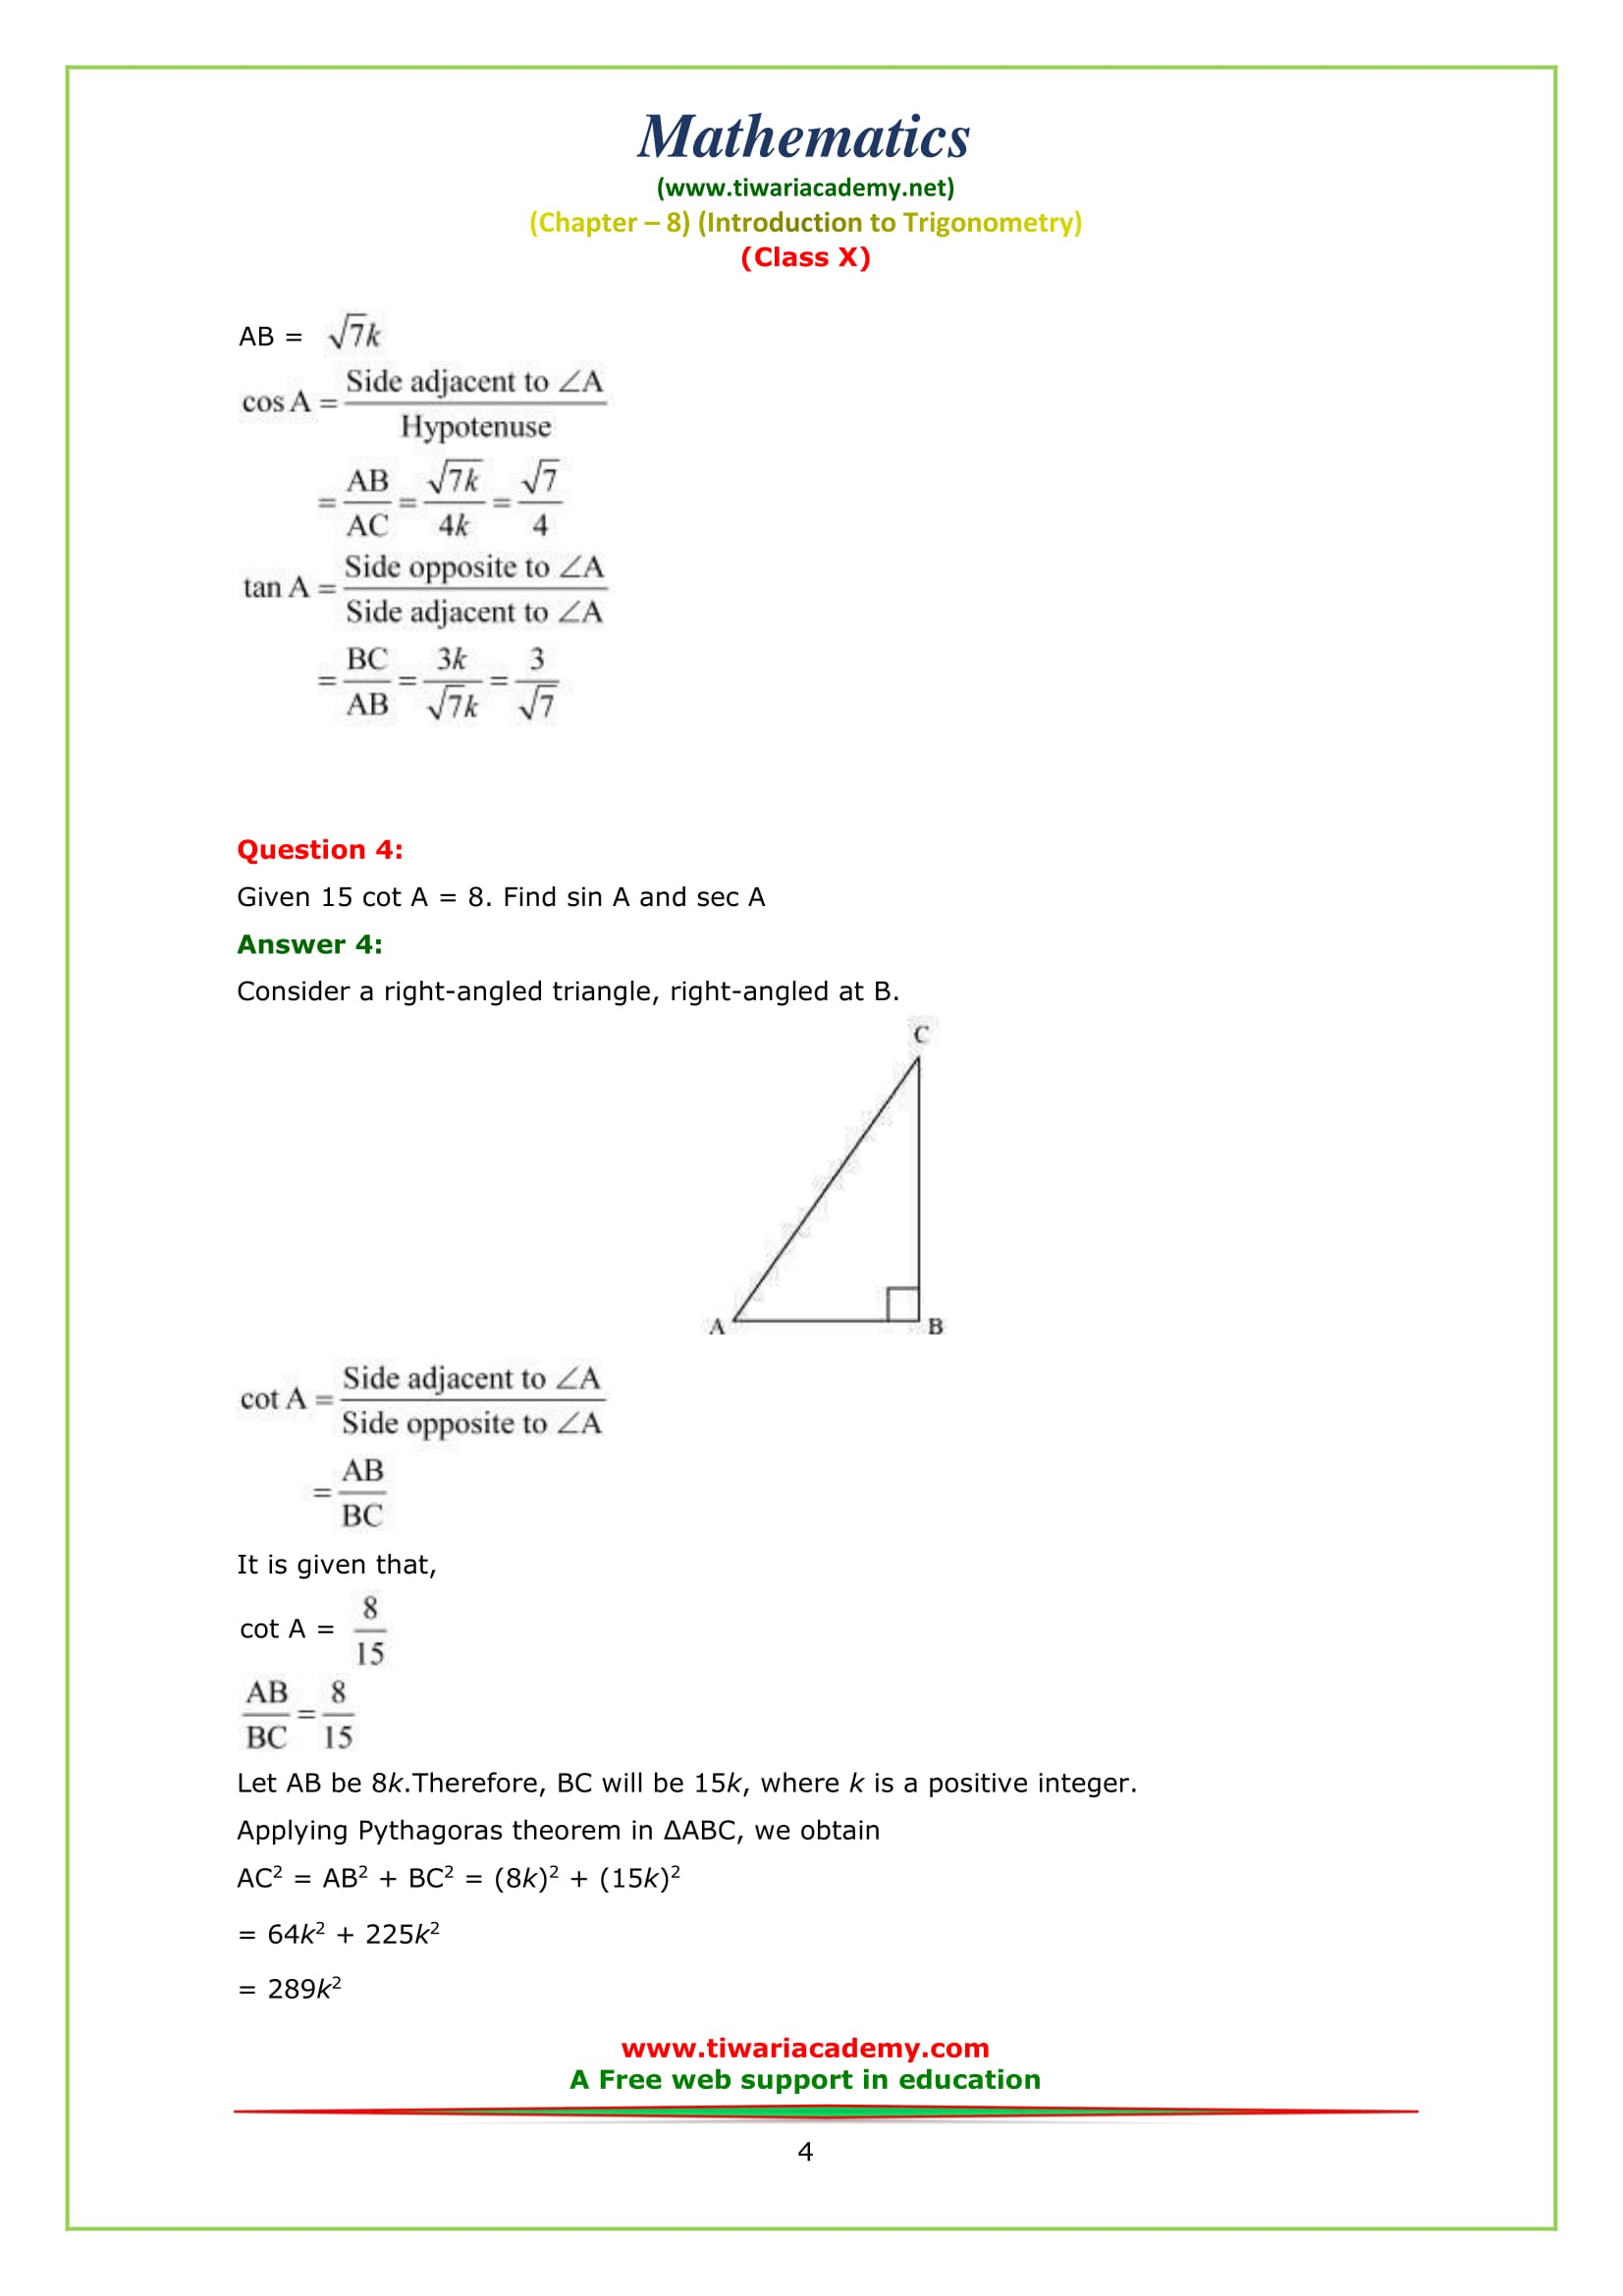 NCERT Solutions for Class 10 Maths Chapter 8 Exercise 8.1 Question 4